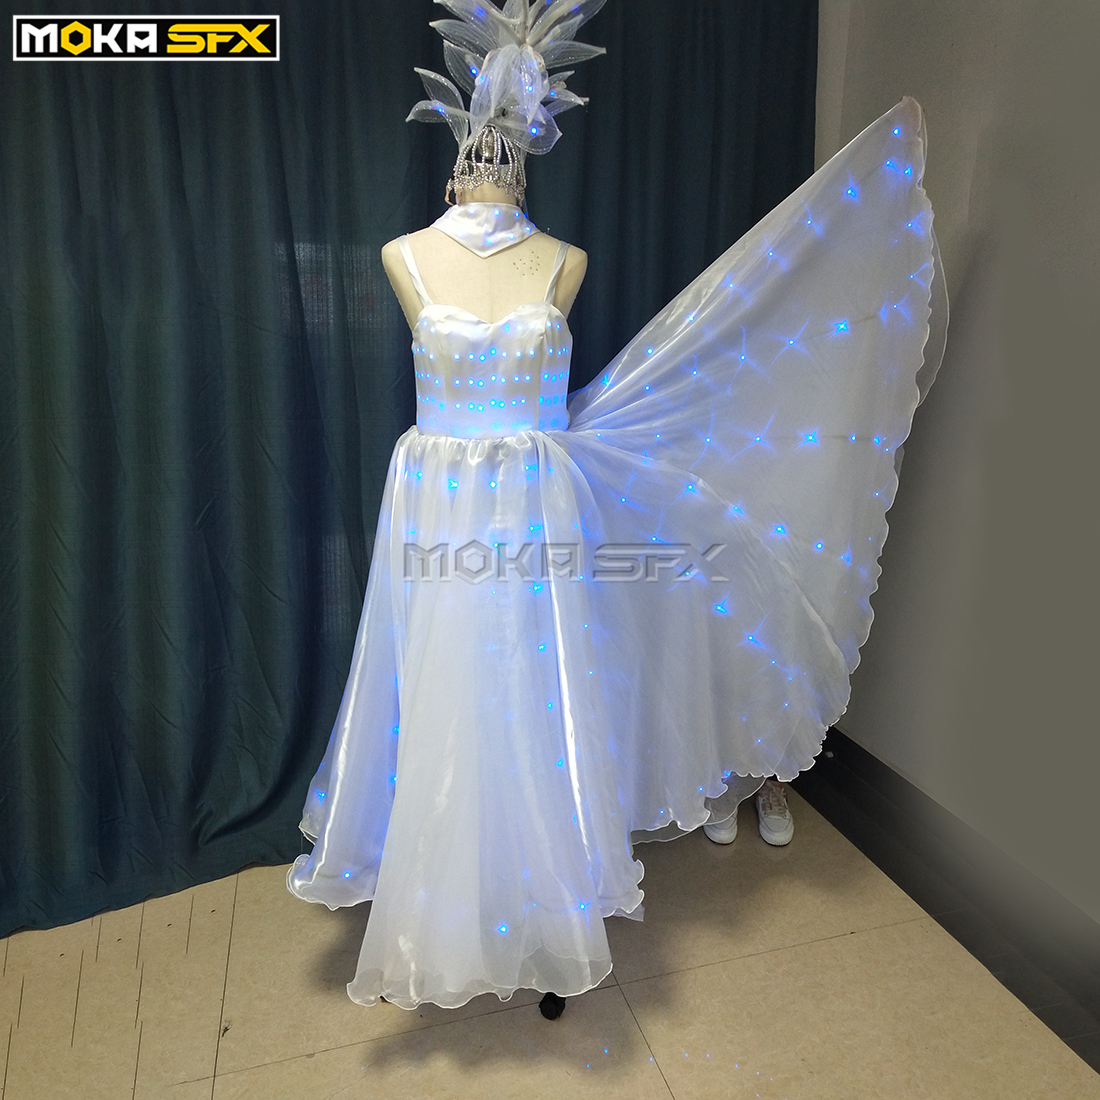 LED Robot Clothes Ballroom Dance Women Dresses Colorful LED Light Robot Luminous Suit For Nightclub Stage Show